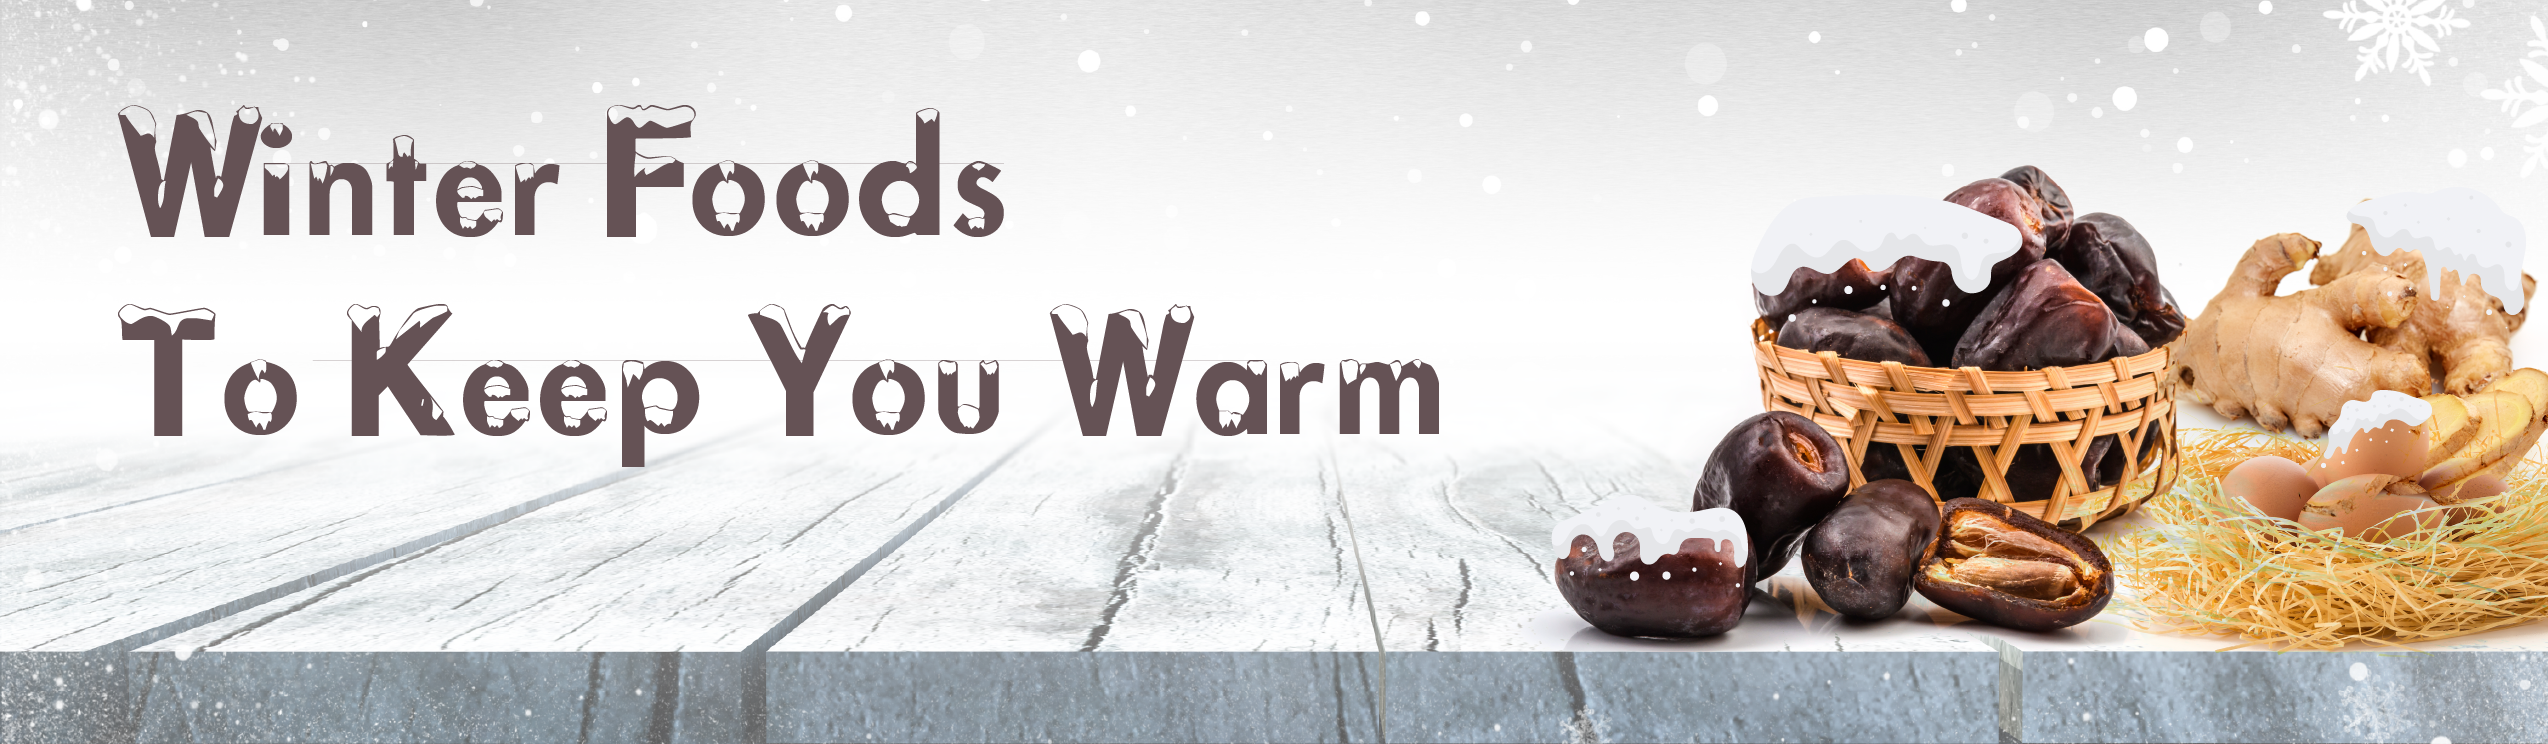 Winter Foods to Keep You Warm